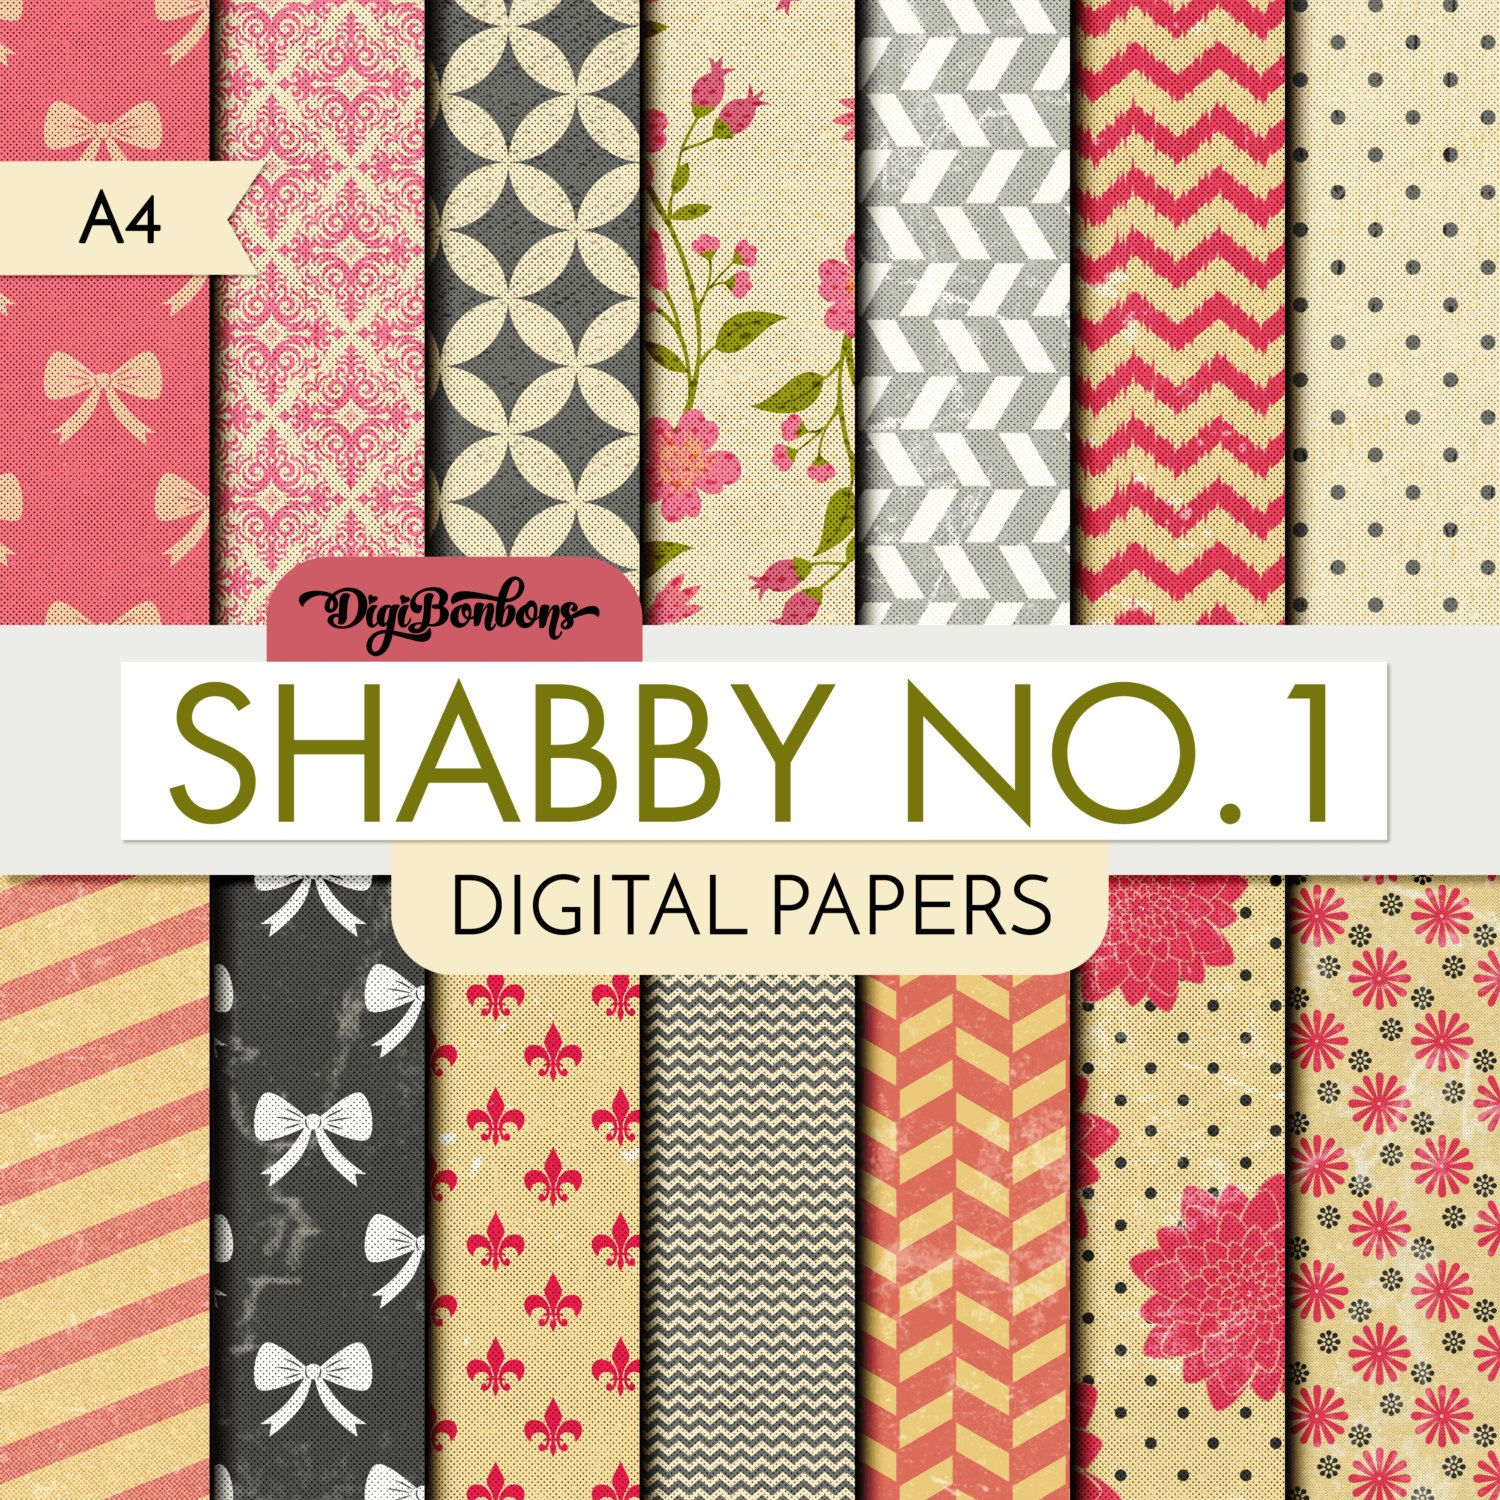 Shabby Chic Scrapbook Digital Paper - A4 size - Textured Rose Cream Gray Digital Papers - Shabby No. 1 scrapbook digital digital paper digital scrapbook digital papers digital patterns instant download shabby chic shabby florals shabby digital shabby papers textured digital textured paper a4 paper DigiBonBons 2.99 USD